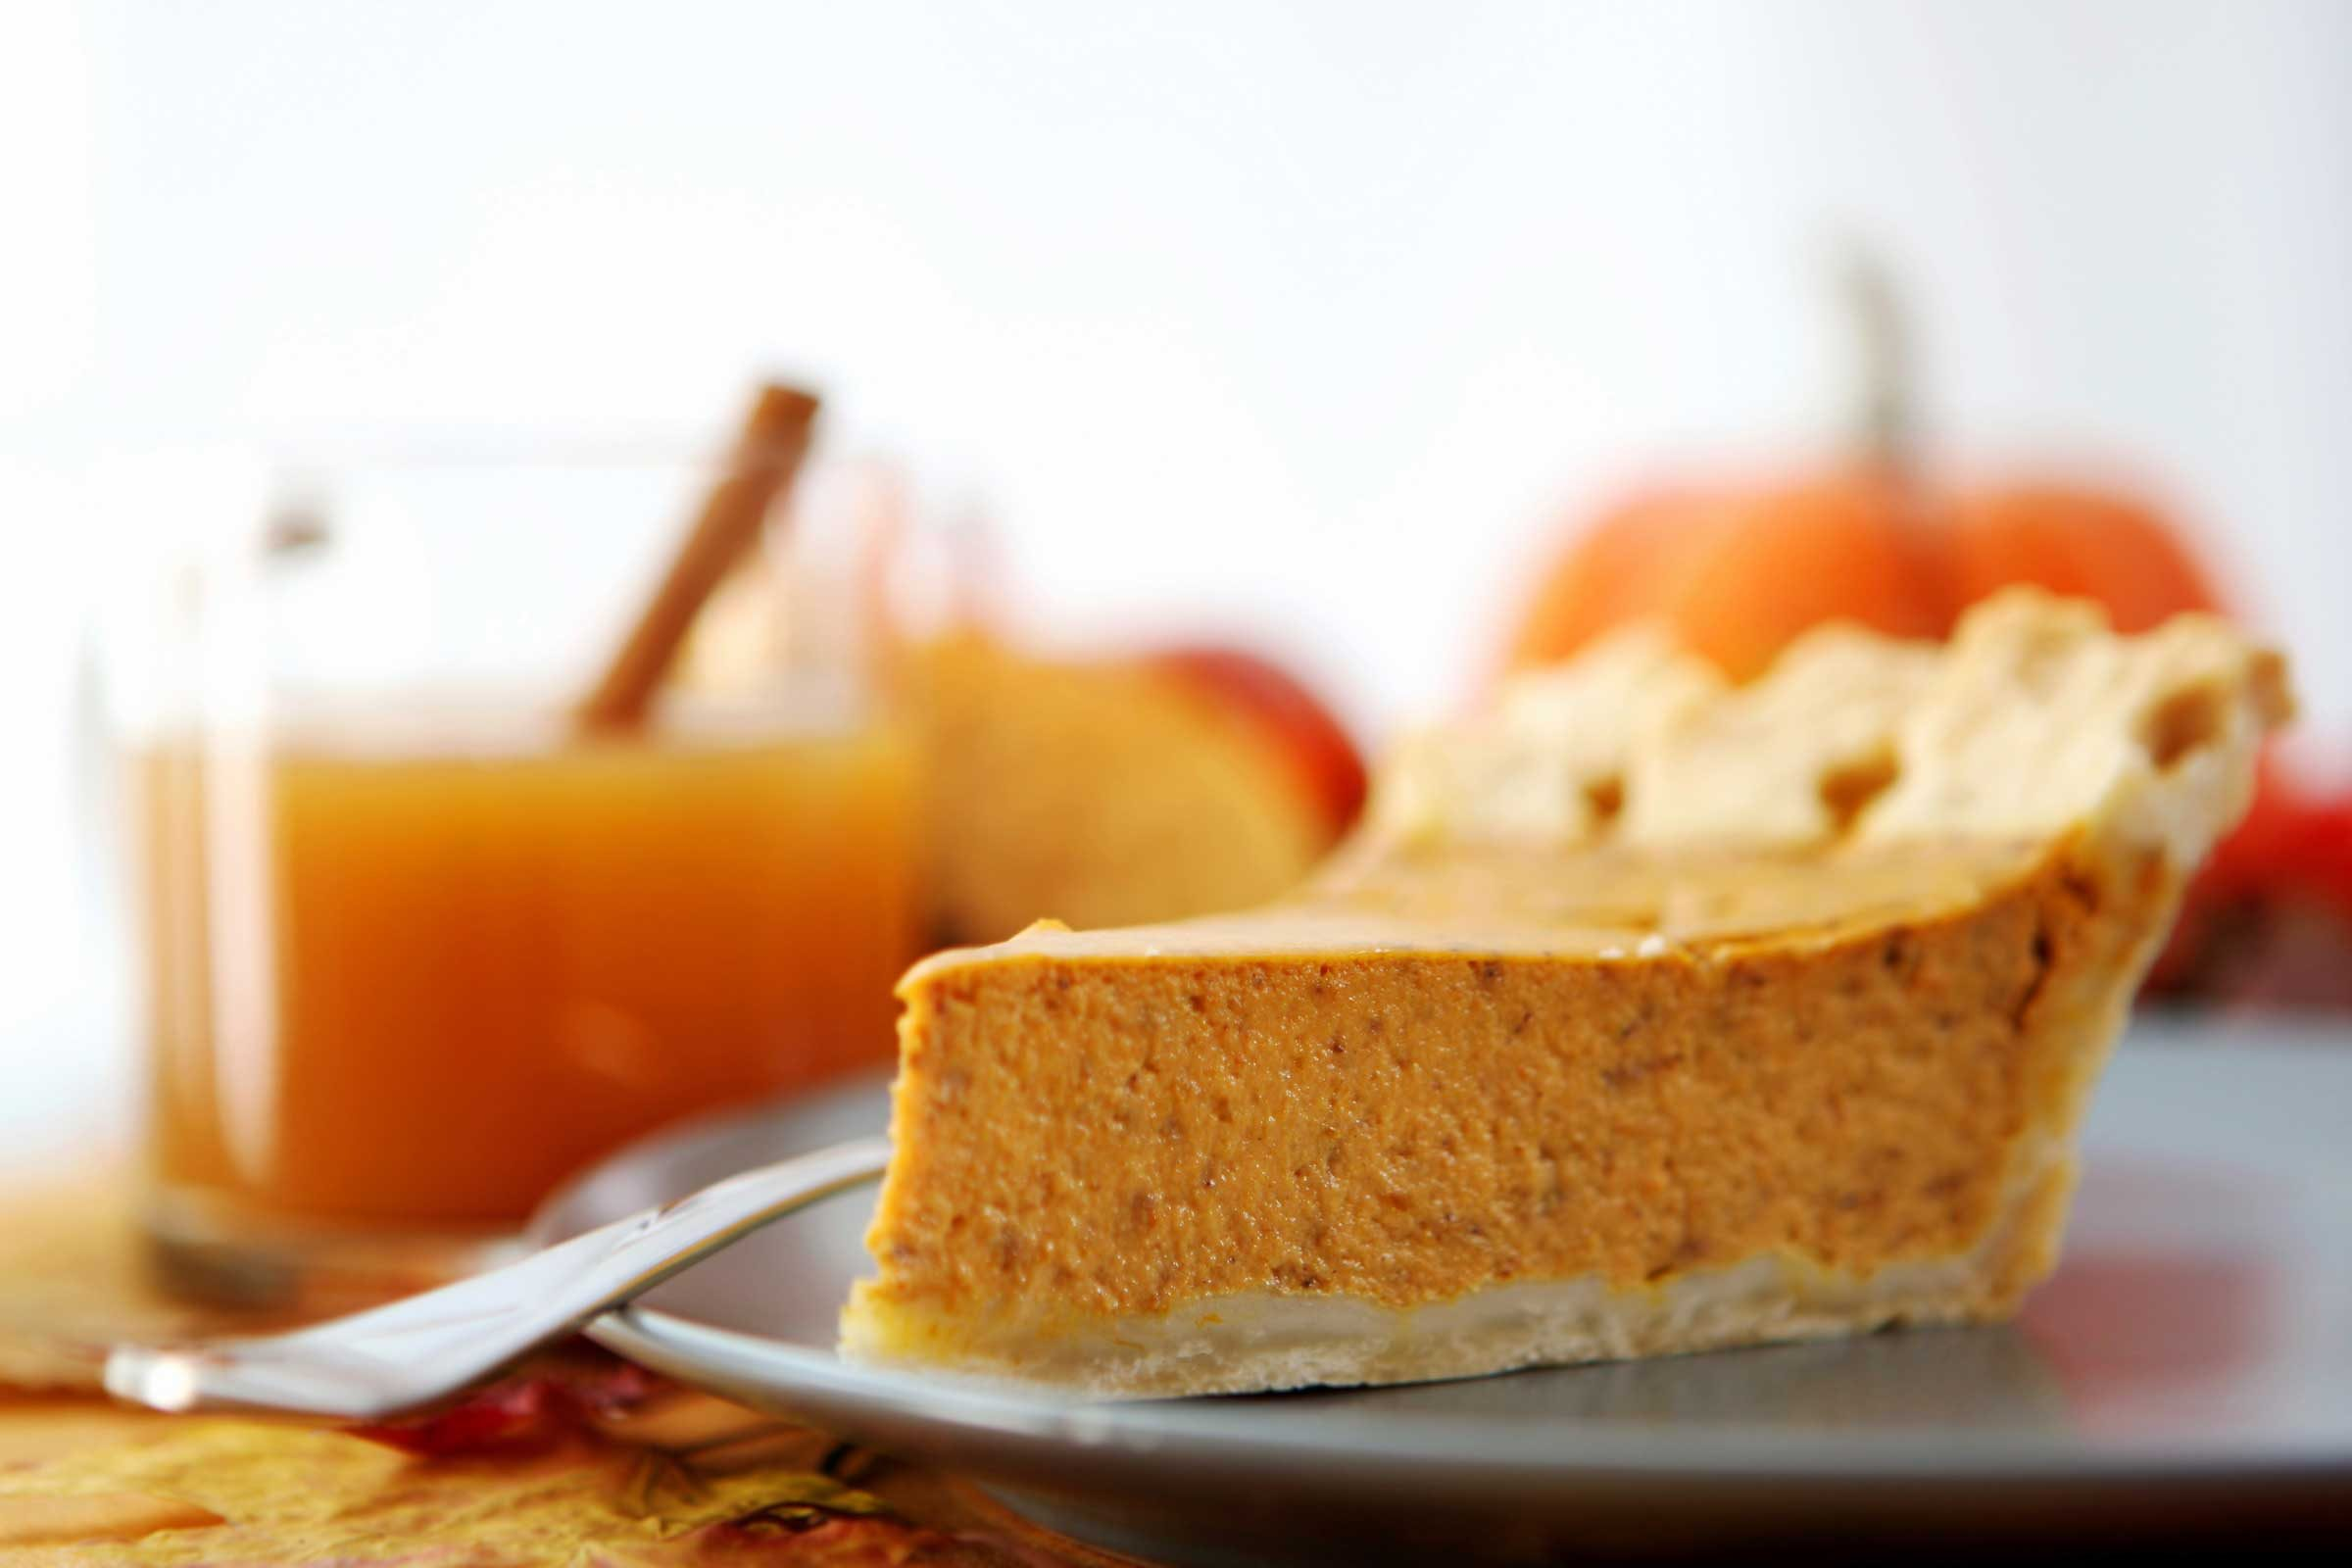 Pumpkin pie: 316 calories, 14 g fat per slice